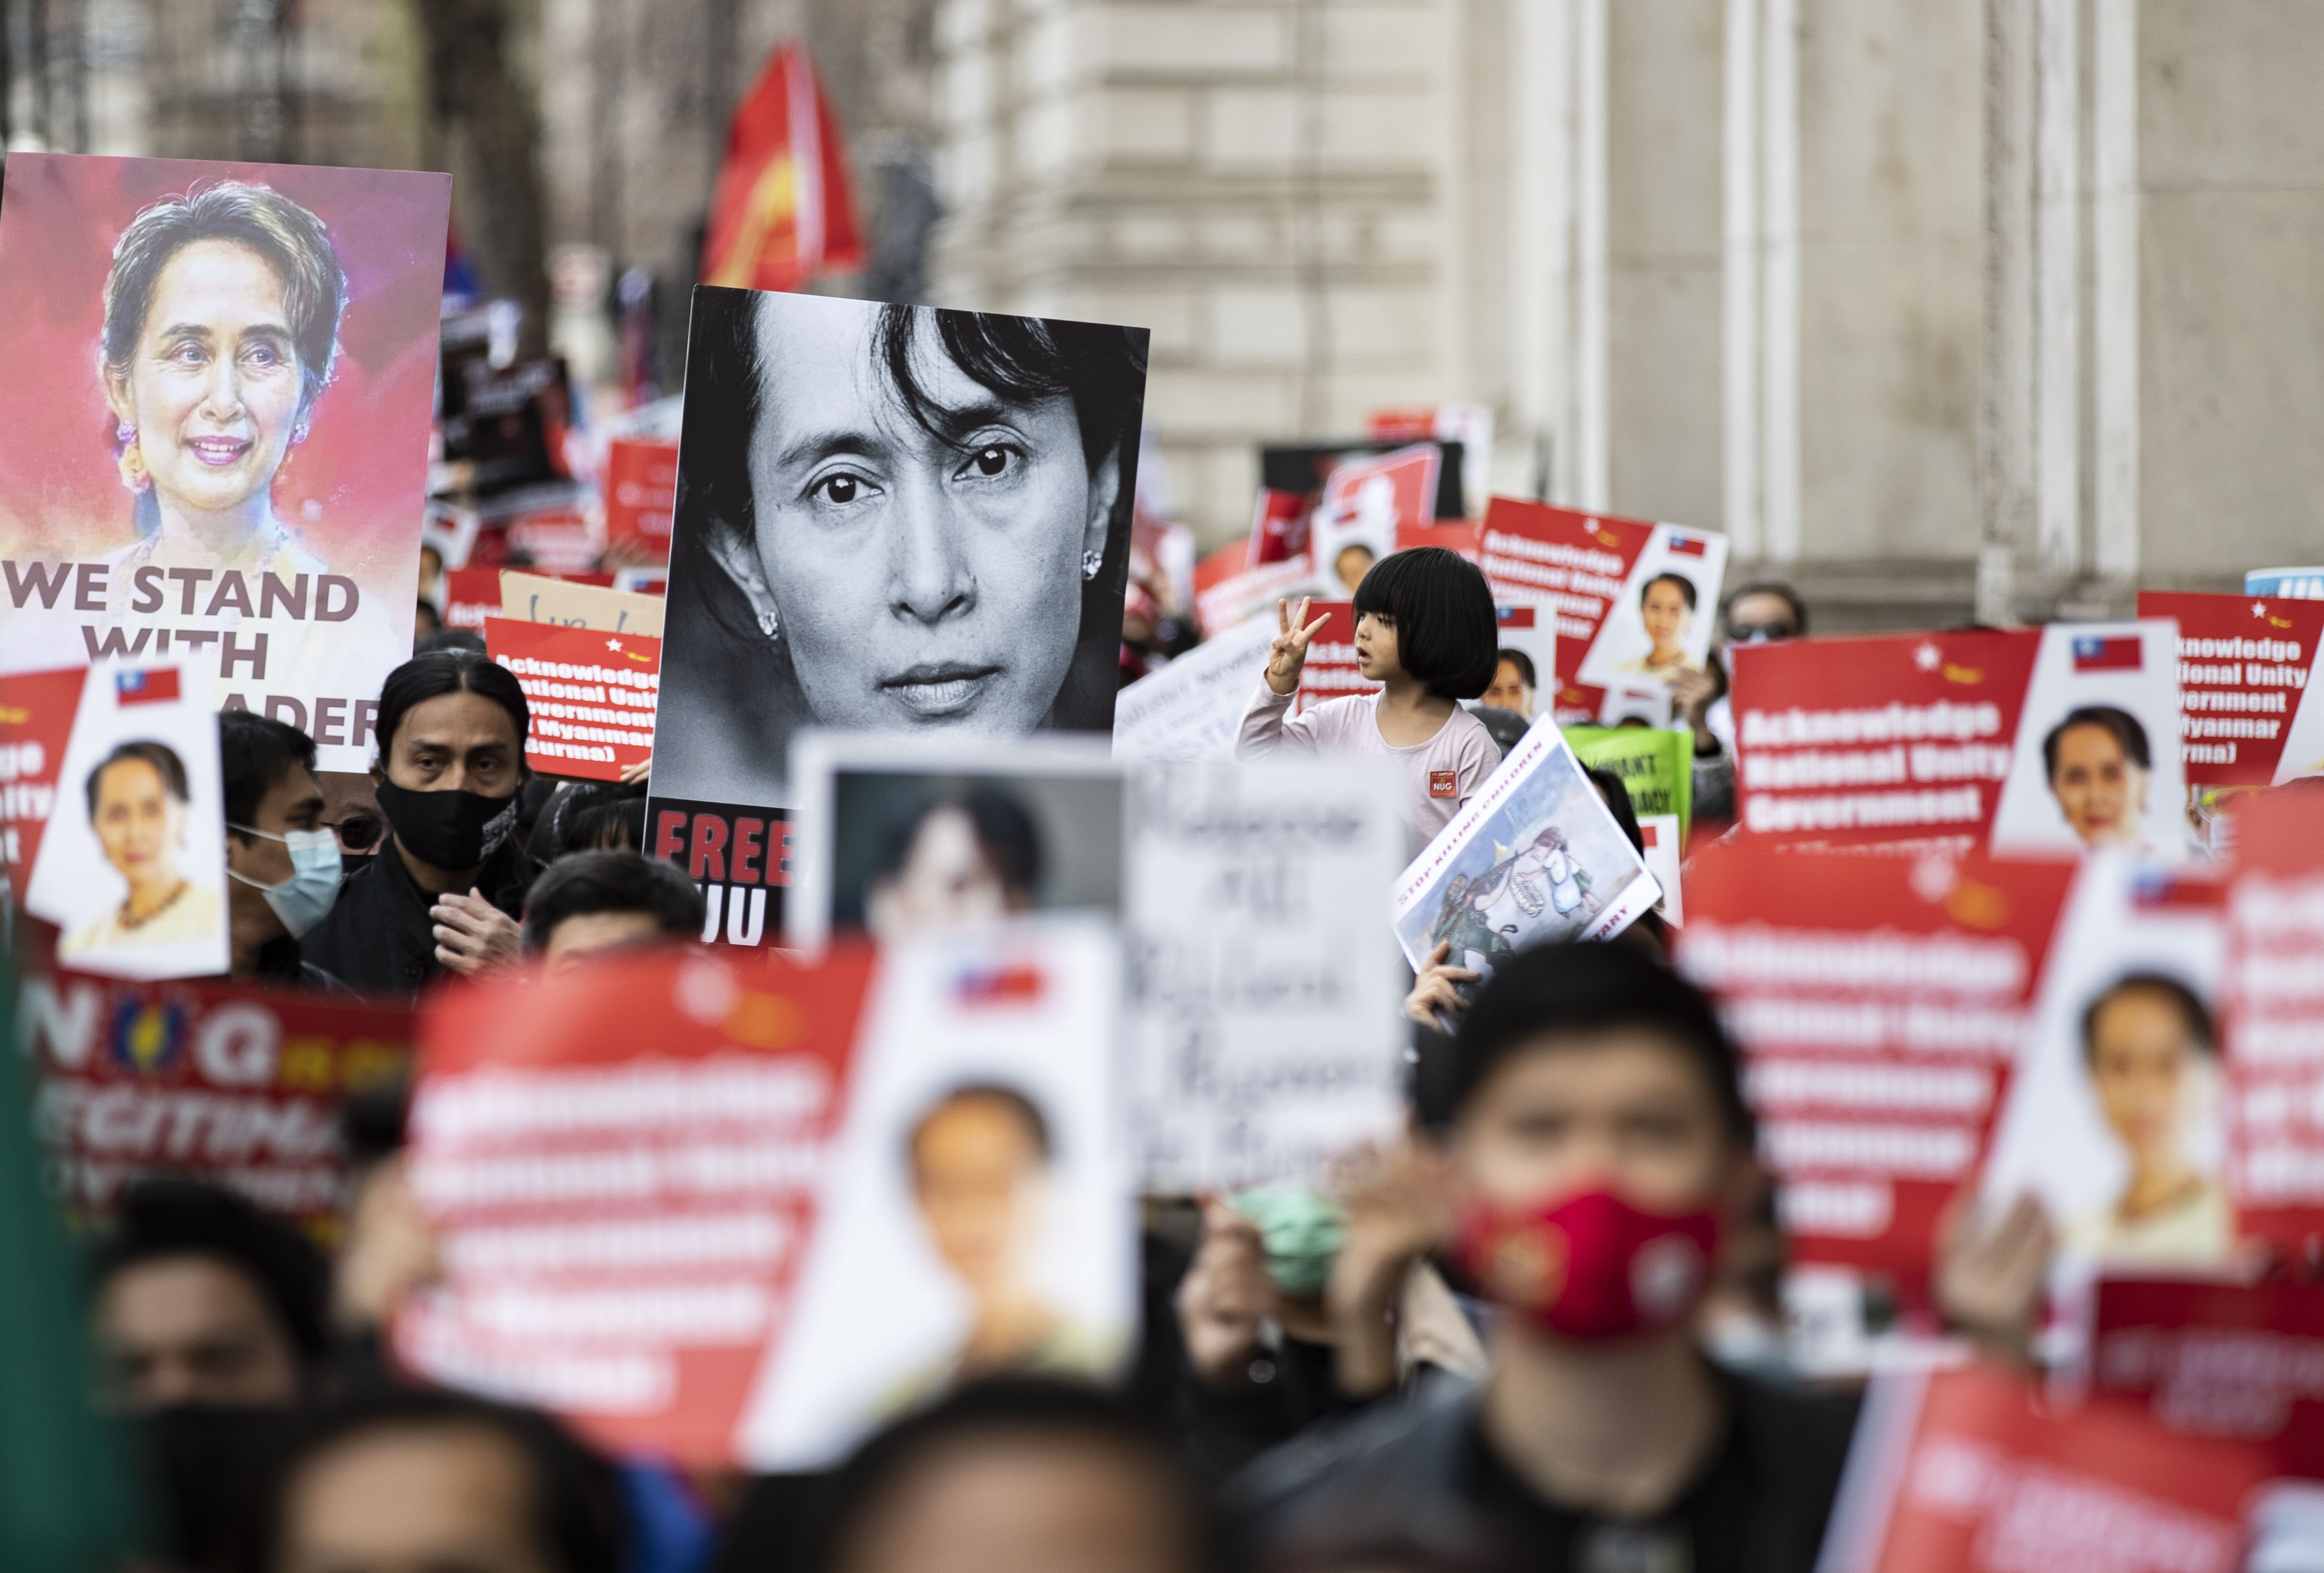 <p>Protesters hold placards during the global Myanmar Spring Revolution as they match to Trafalgar Square in London. 18 countries, 37 cities and ground activists joined hand in hand showing solidarity with democratic protesters in Myanmar during The global Myanmar Spring Revolution. Since February 1, 2021, following a general election which was won by Aung San Suu Kyi�s National League for Democracy (NLD) party, the military seized control and has declared a year-long state of emergency. Hundreds of people, including children, have been killed. Many people been detained including the elected leader Aung San Suu Kyi and members of her NLD party. (Photo by May James / SOPA Images/Sipa USA)</p>